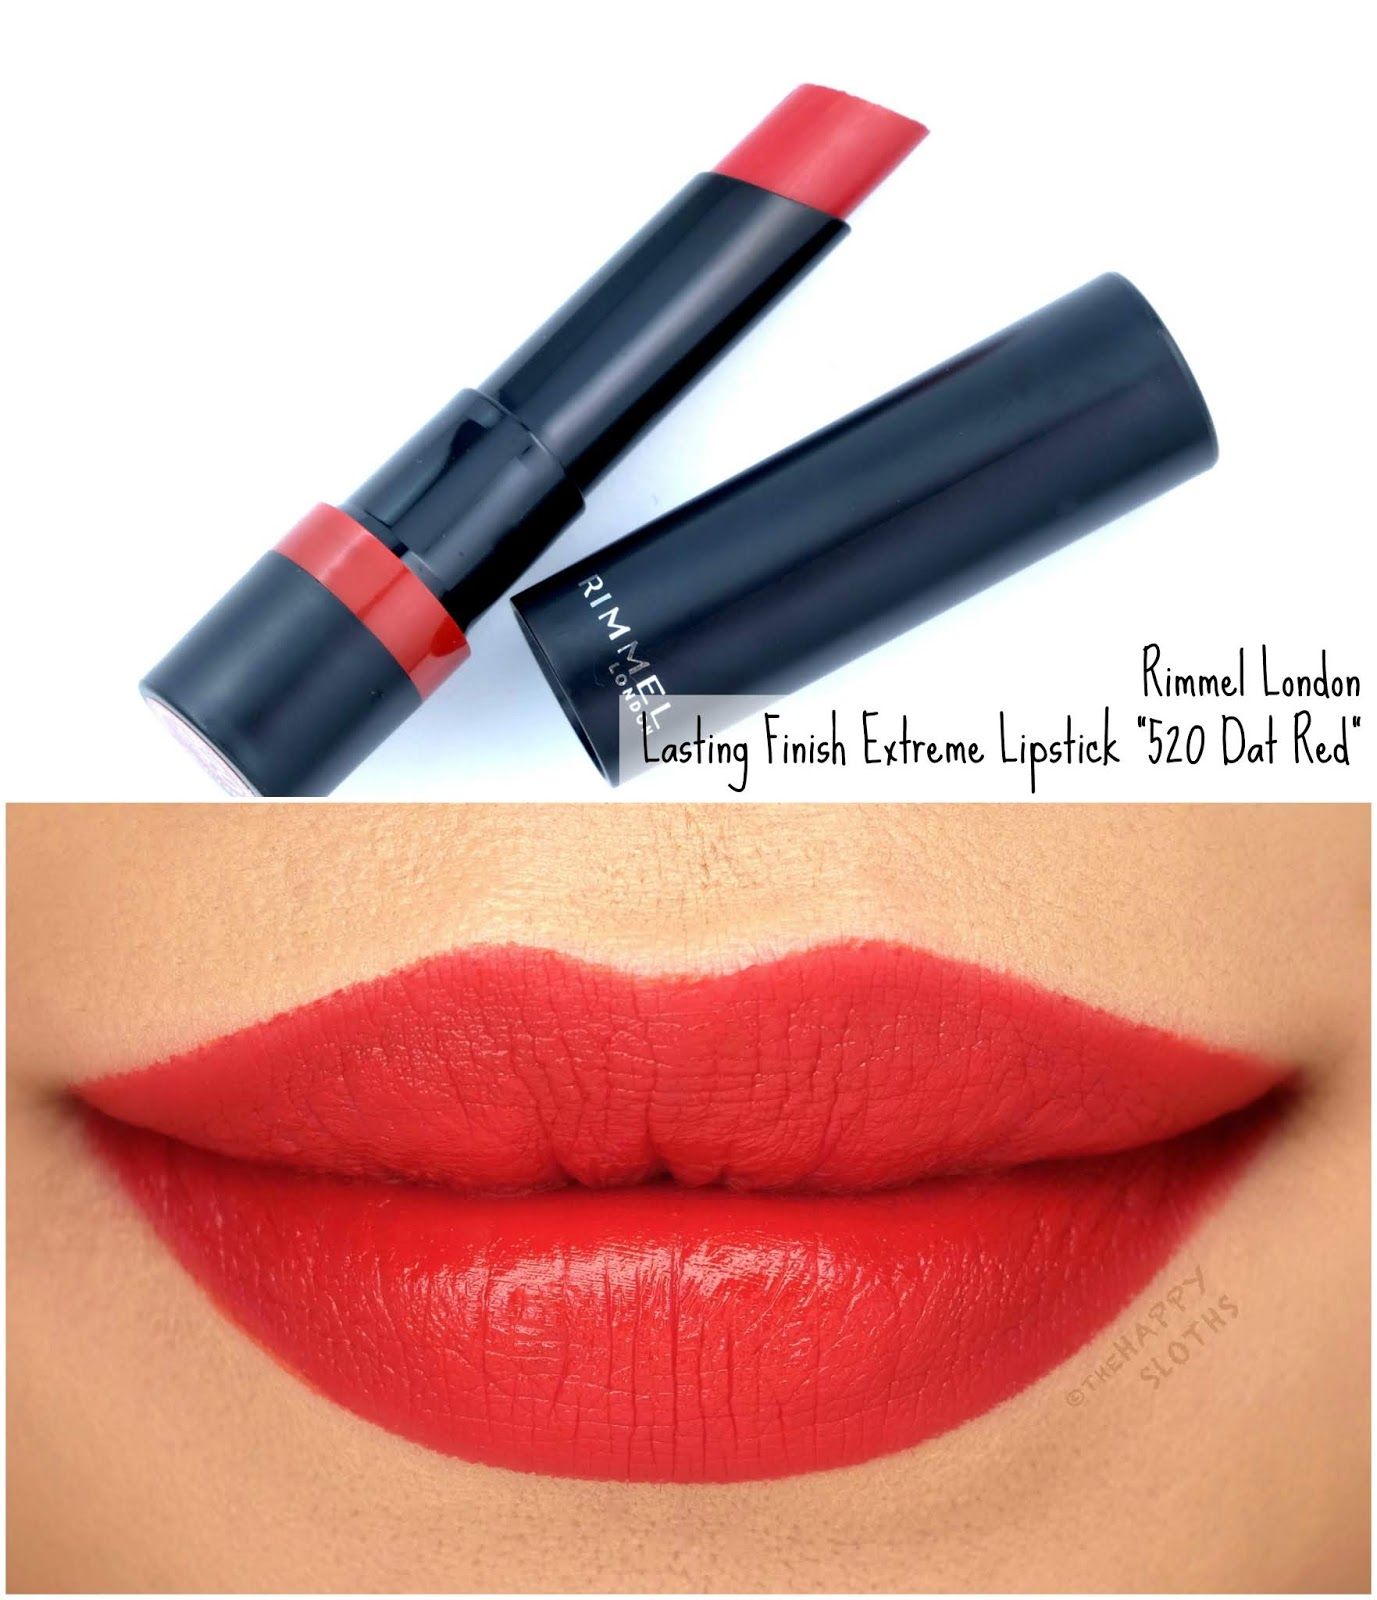 "Rimmel London | Lasting Finish Extreme Lipstick in ""520 Dat Red"": Review and Swatches"